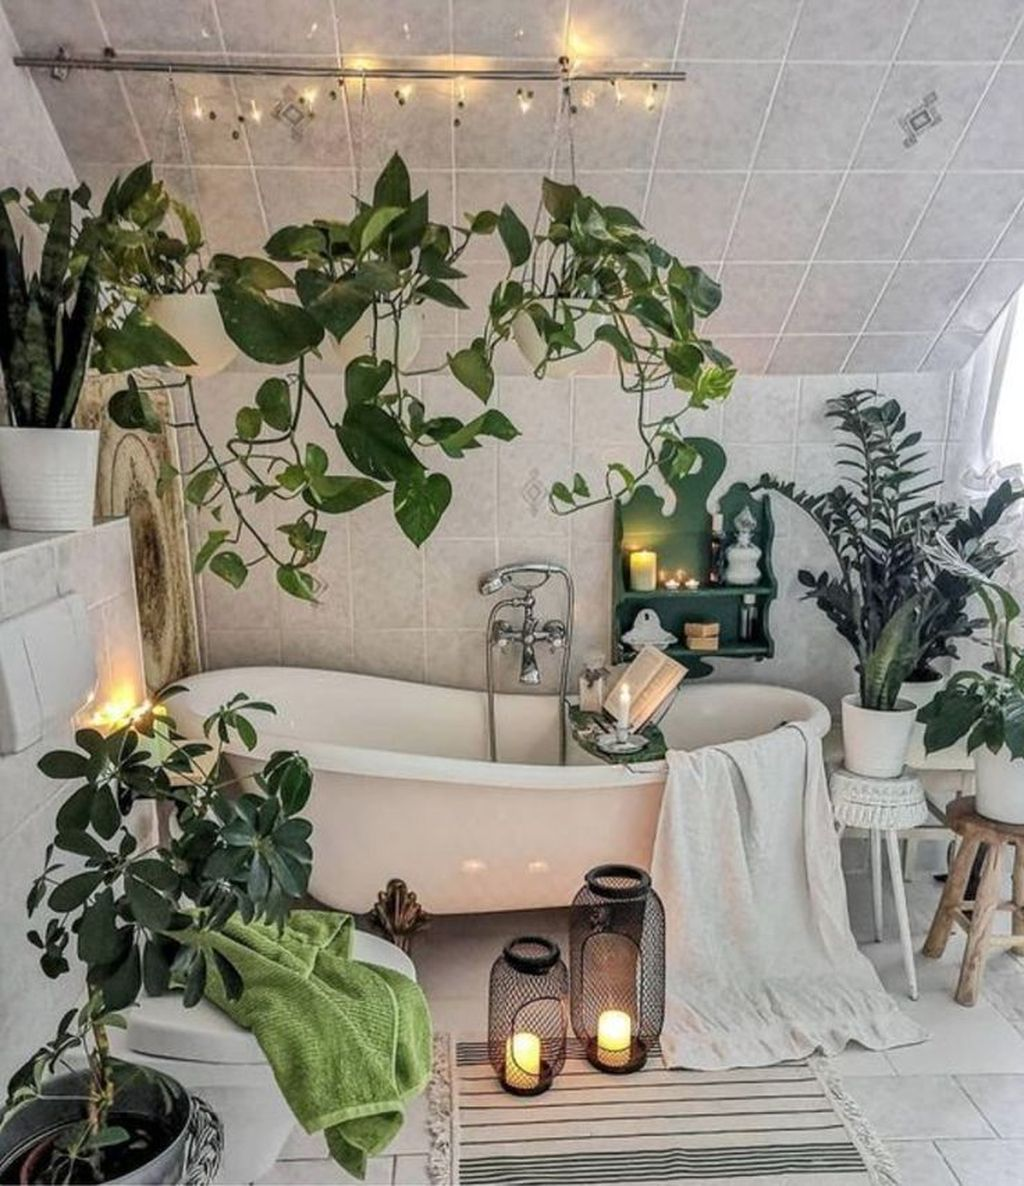 The Best Jungle Bathroom Decor Ideas To Get A Natural Impression 17